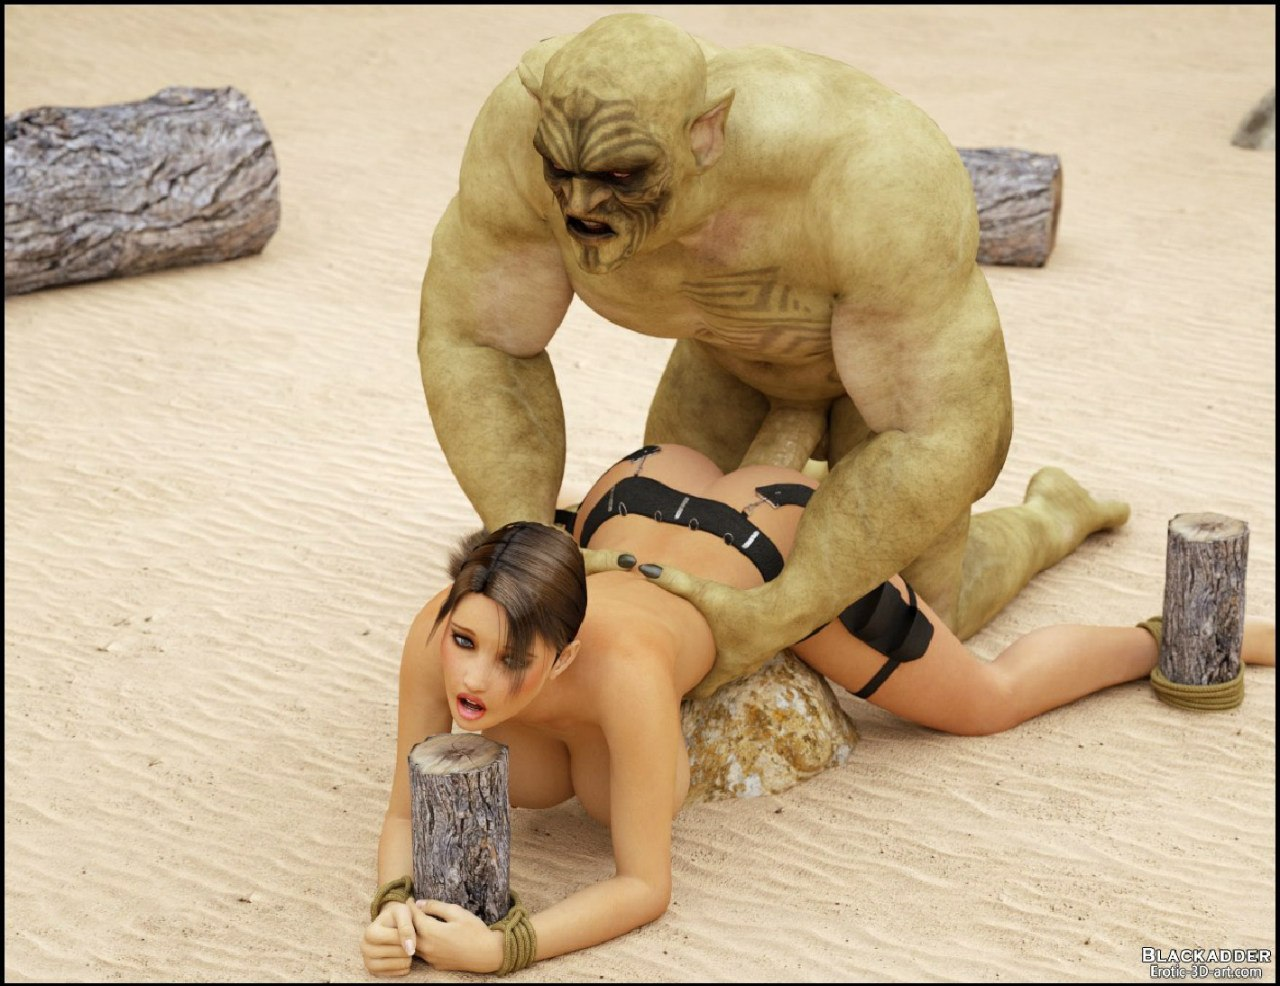 Lara croft fucks monsters video sex gallery